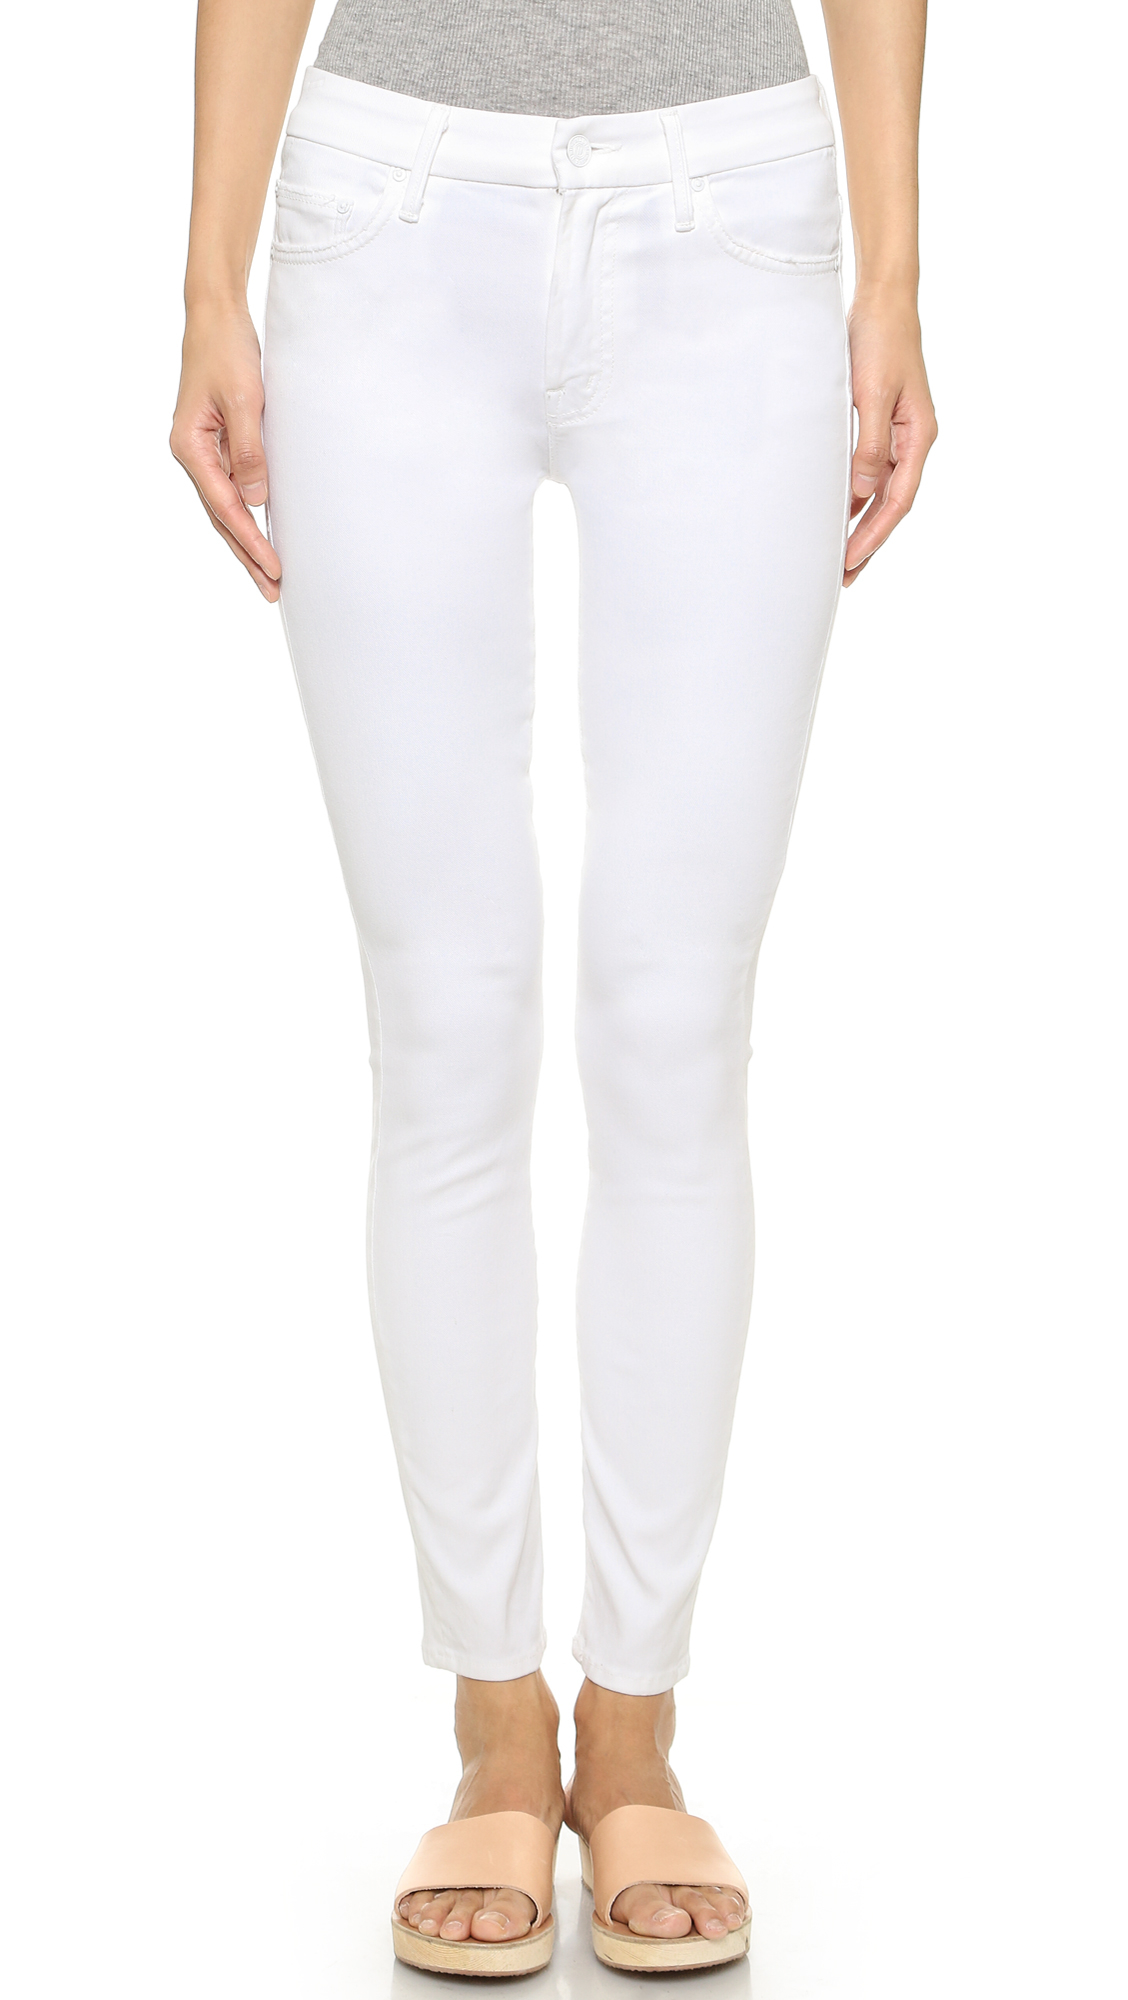 Mother High Waist Looker Skinny Jeans - Glass Slipper in White | Lyst